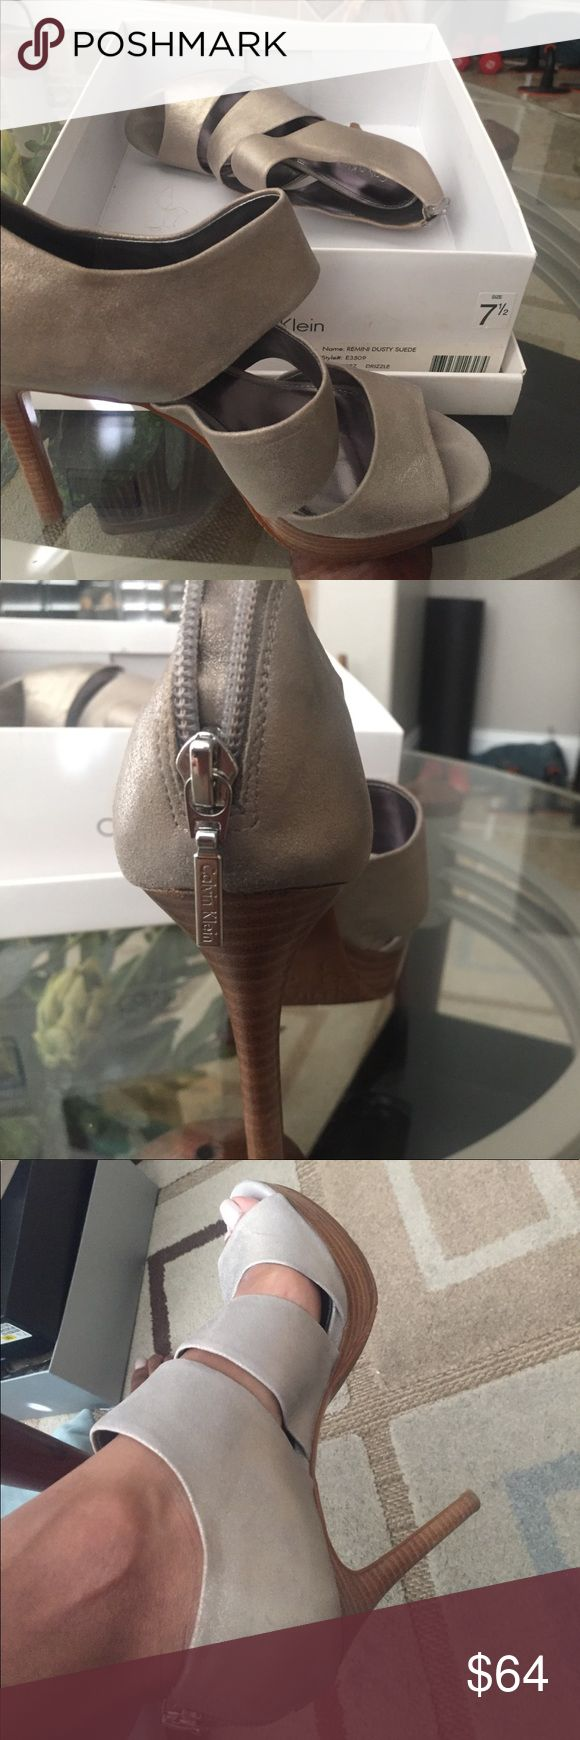 Calvin Klein Heels Remini Dusty Suede Heels. Style E3509. 7.5. Well taken care of. Excellent condition. Calvin Klein Shoes Heels